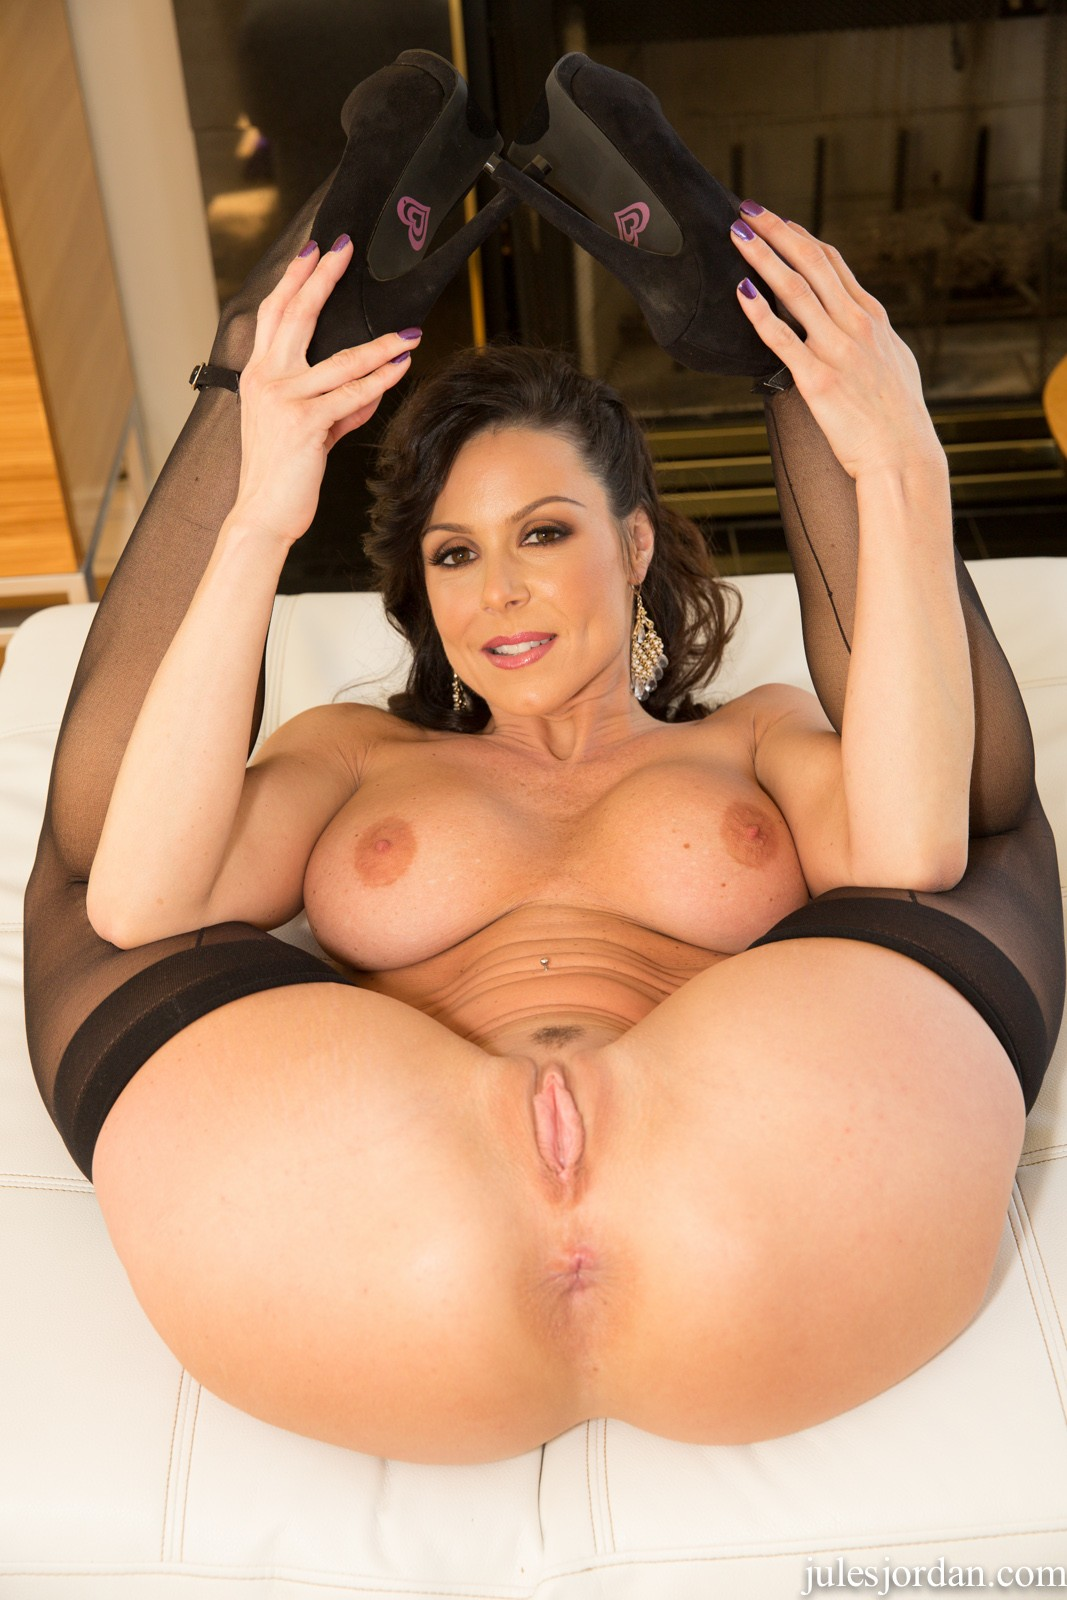 Kendra lust photos